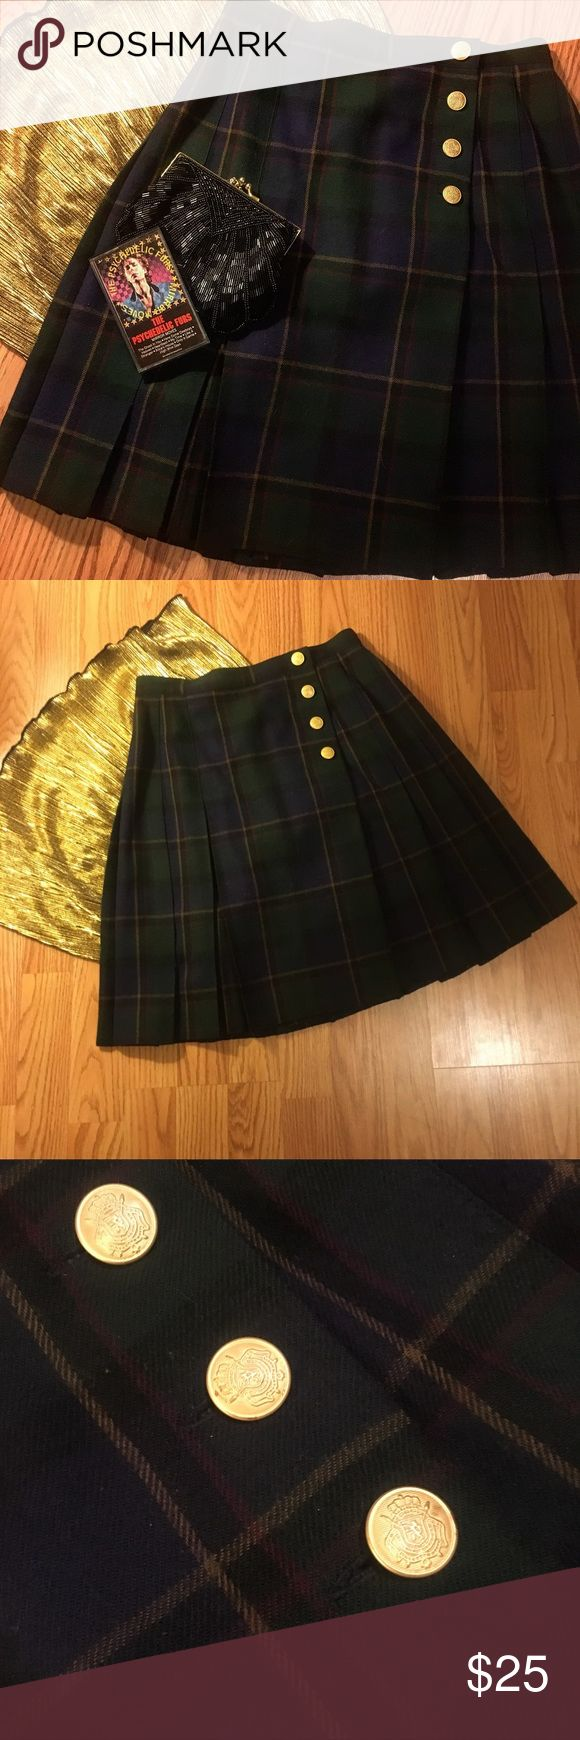 🐑Vintage Plaid Wool Skirt🐑 Adorable little wool skirt. Dark plaid in green, blue and burgundy. Gold coloured buttons. Soft and warm, with sweet pleating at front and back. Fall/winter staple! ((TAGS: vintage, retro, pinup, school girl, 50s, 60s, 70s, punk, new wave, Twin Peaks, Audrey Horne, tartan, Scottish, rockabilly, Hell Bunny, Stop Staring, Sourpuss, Voodoo Vixen, Urban Outfitters, American Apparel, Modcloth, Free People)) Urban Outfitters Skirts Mini